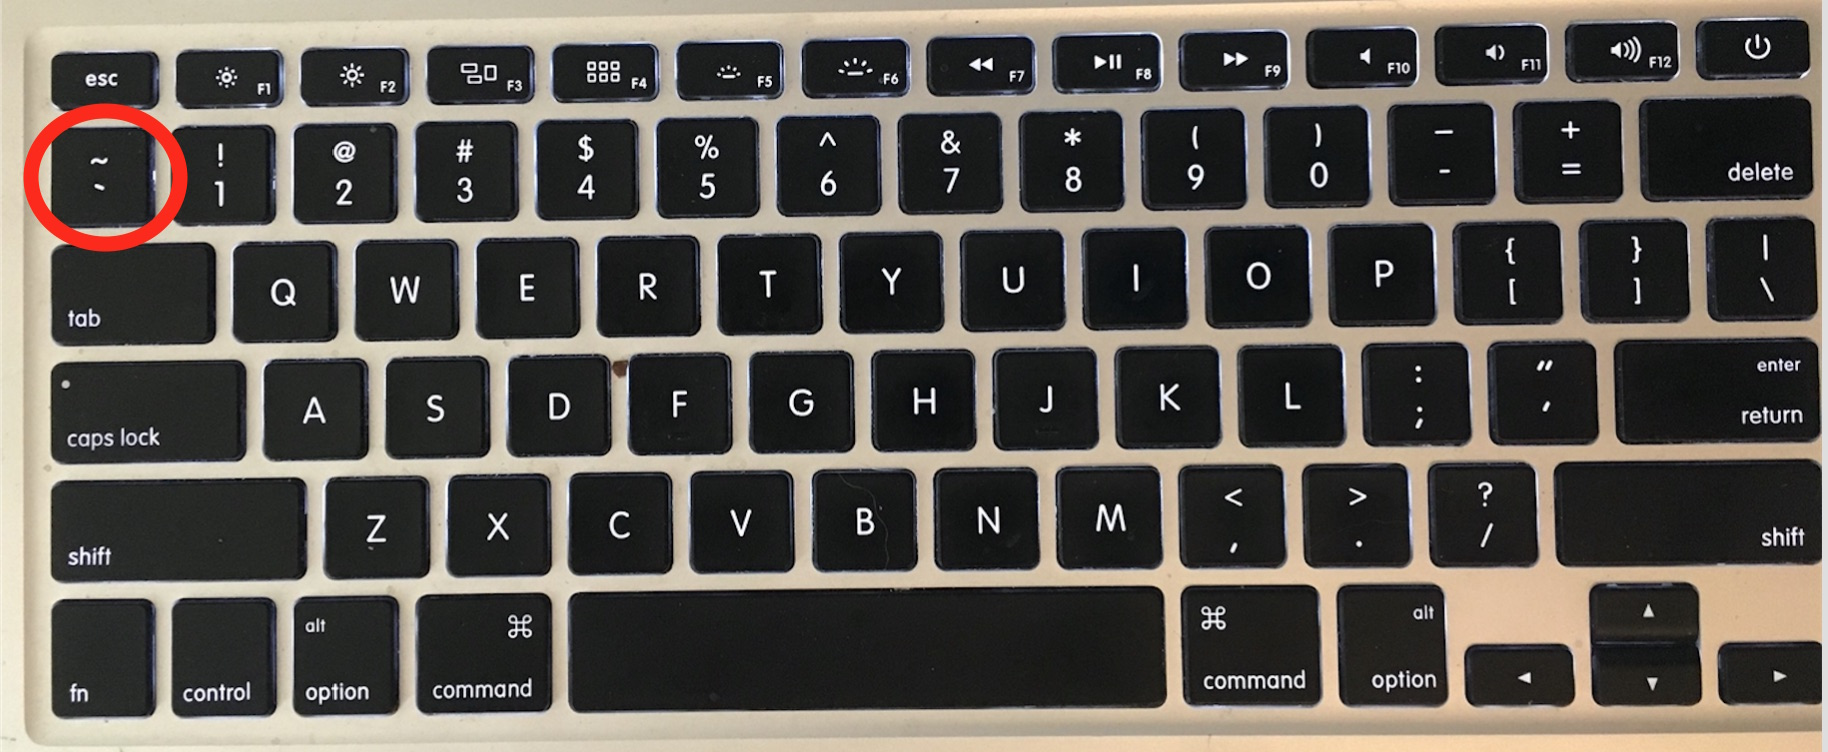 accent grave on keyboard